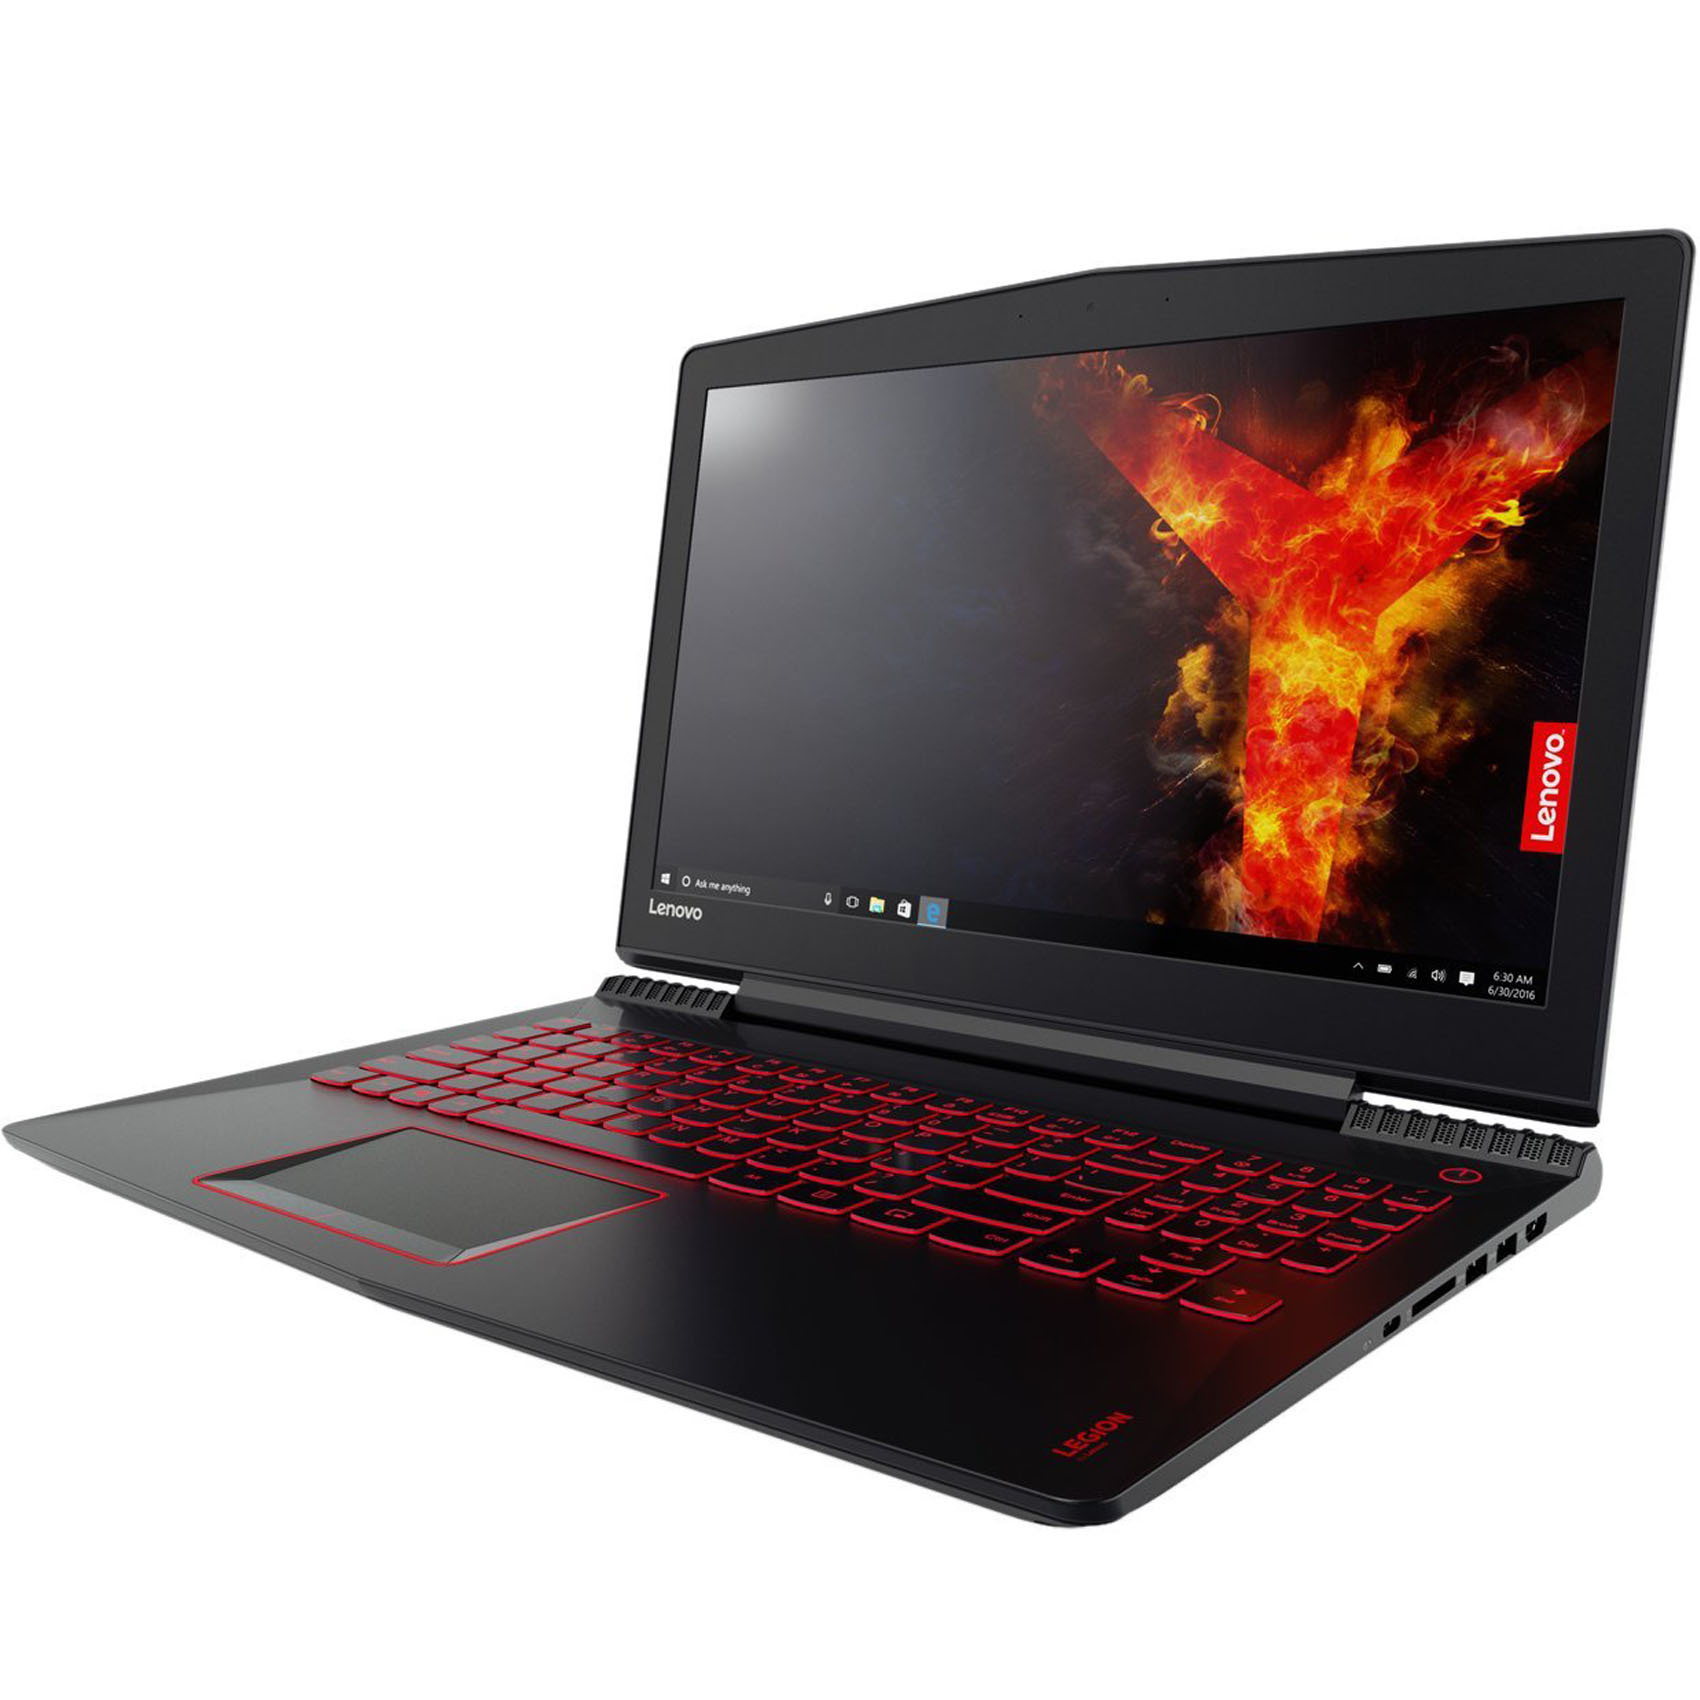 Lenovo I5 Laptop Price In Dubai Carrefour - ▷ ▷ PowerMall